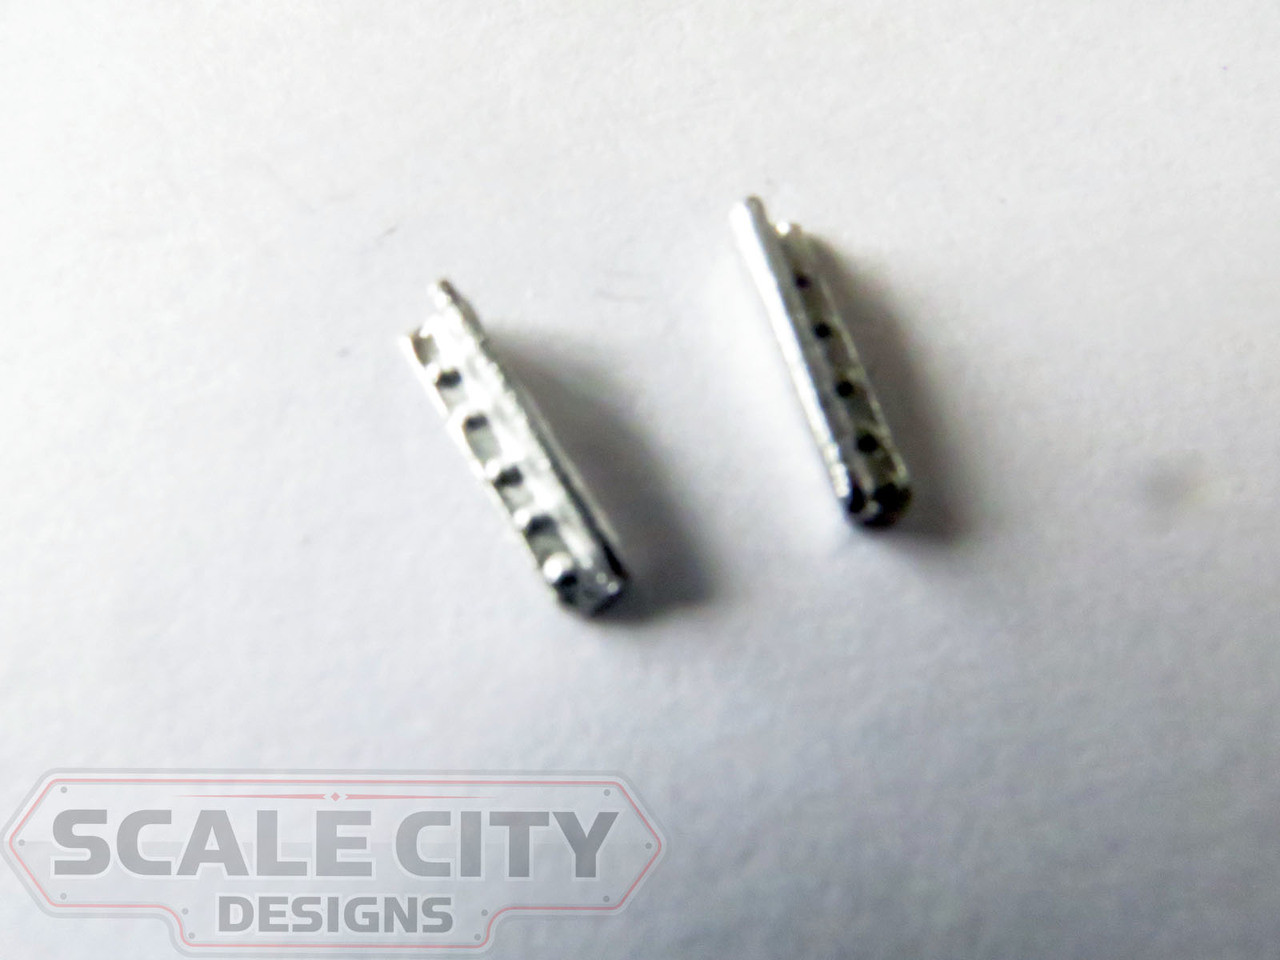 48-017 HOPPER CAR OFFSET RIBS FOR WEAVER OFFSET SIDE O SCALE (FORMERLY KEIL-LINE)